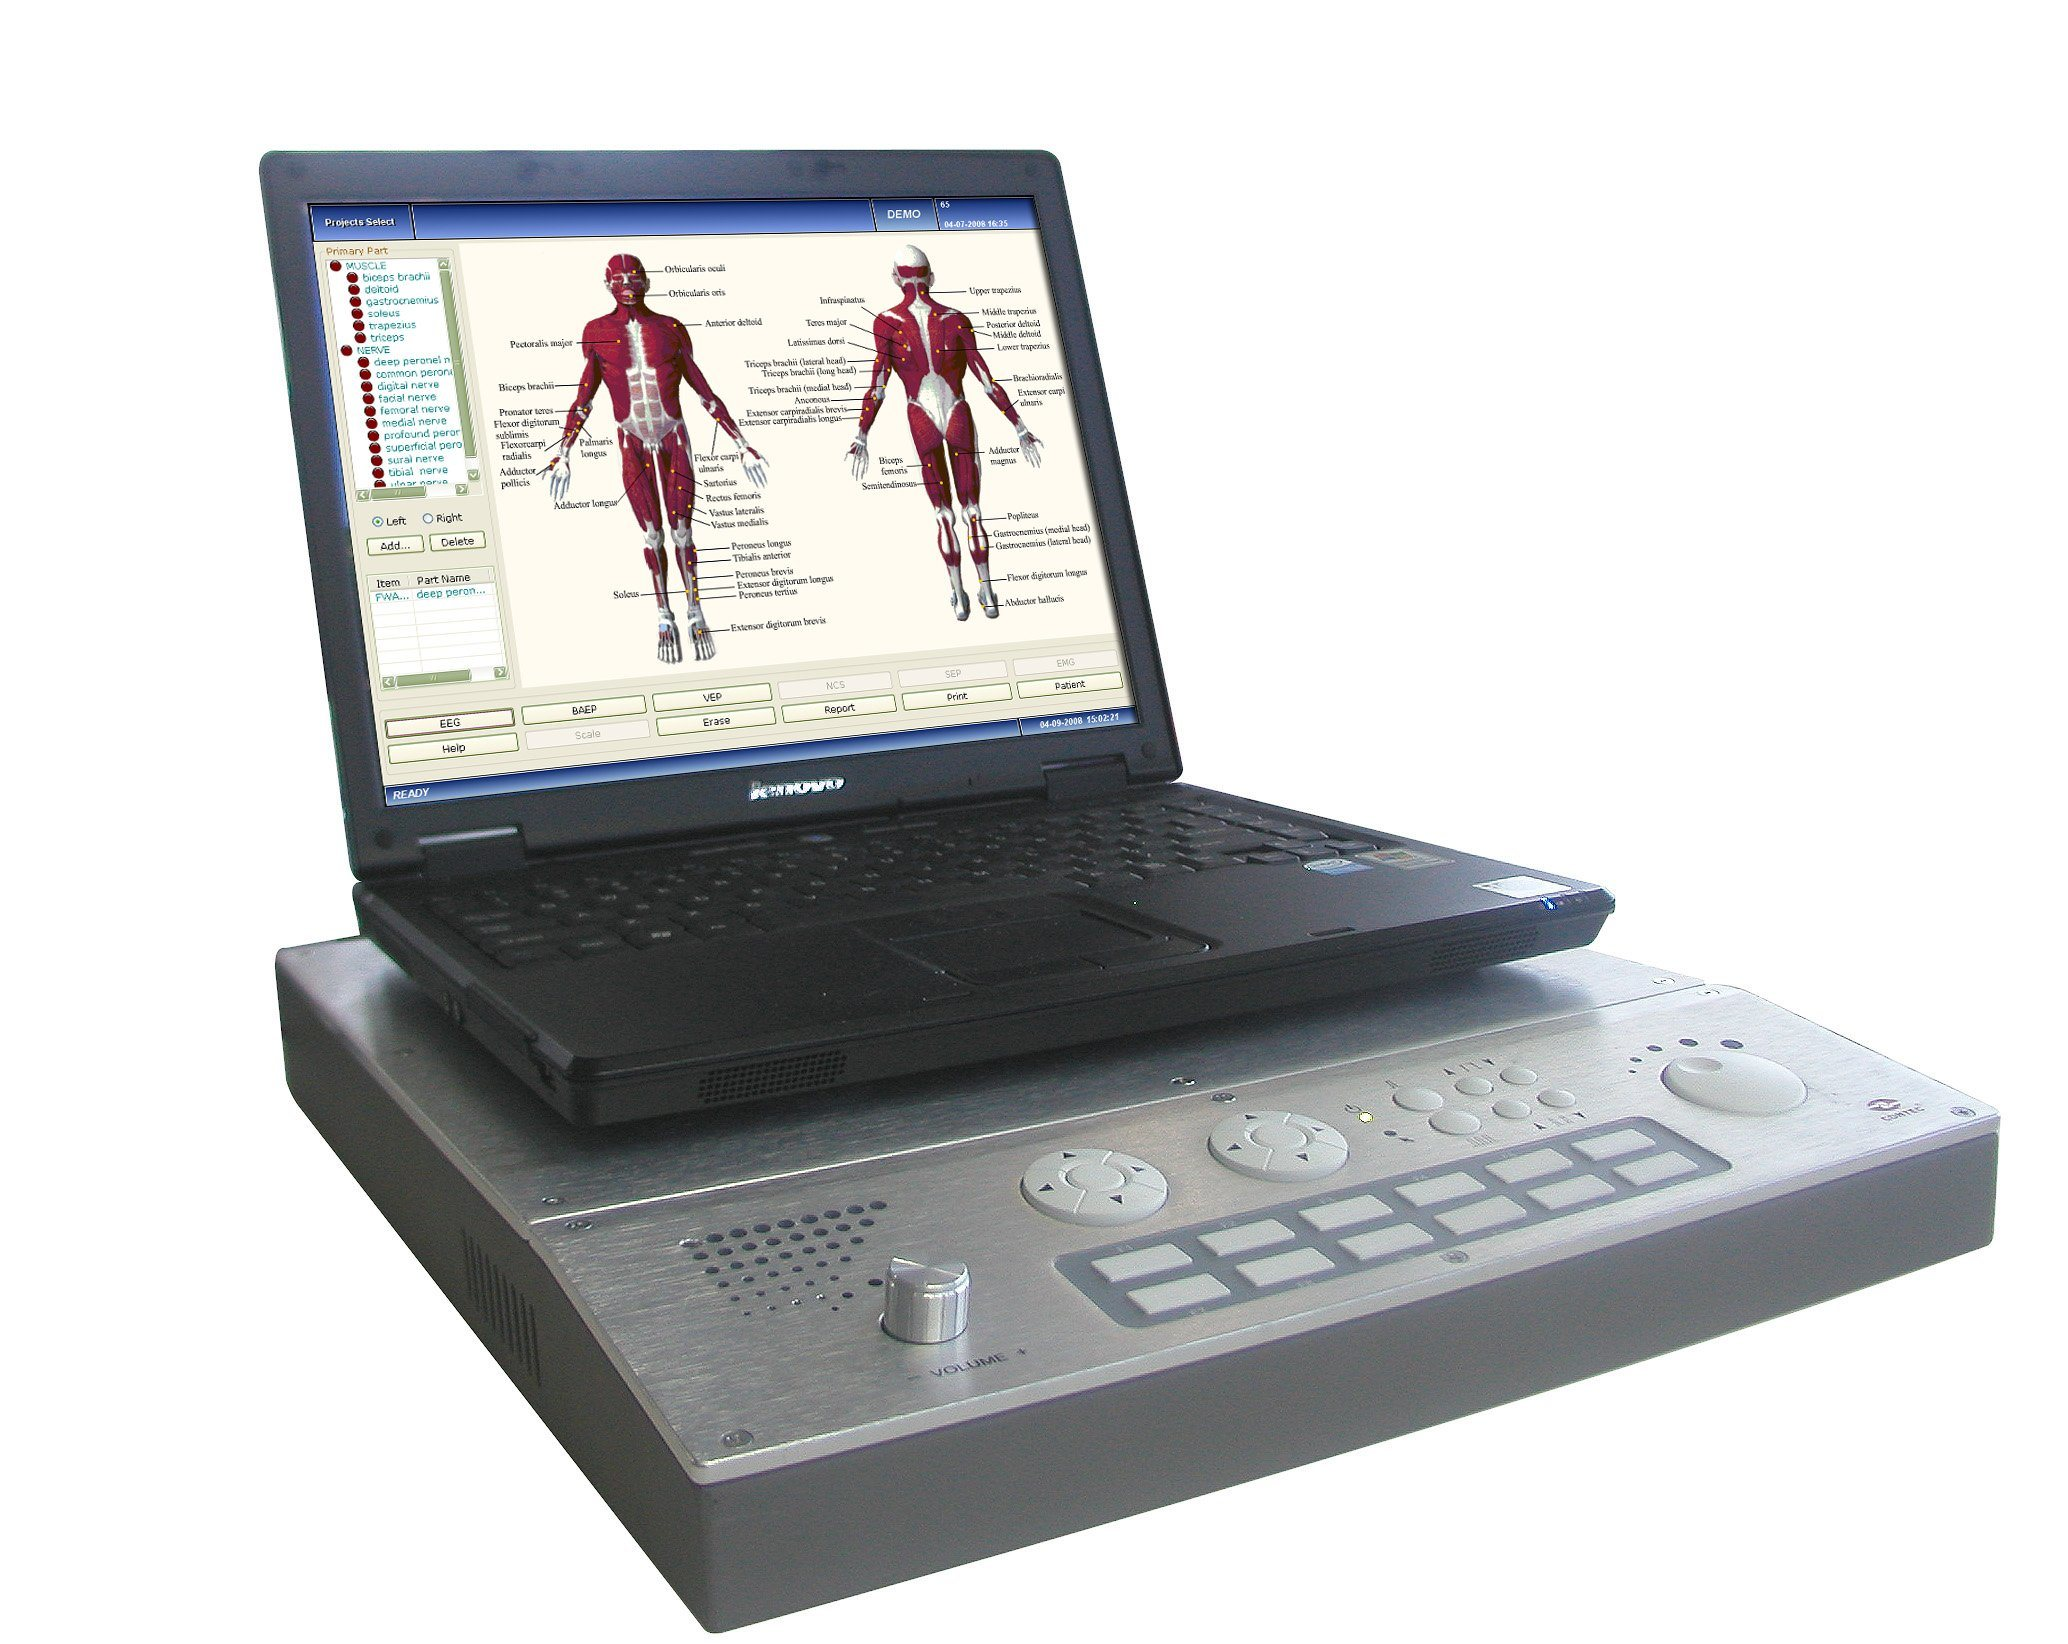 200kHz, 5-5000ms Medical Equipment Ultrasound System